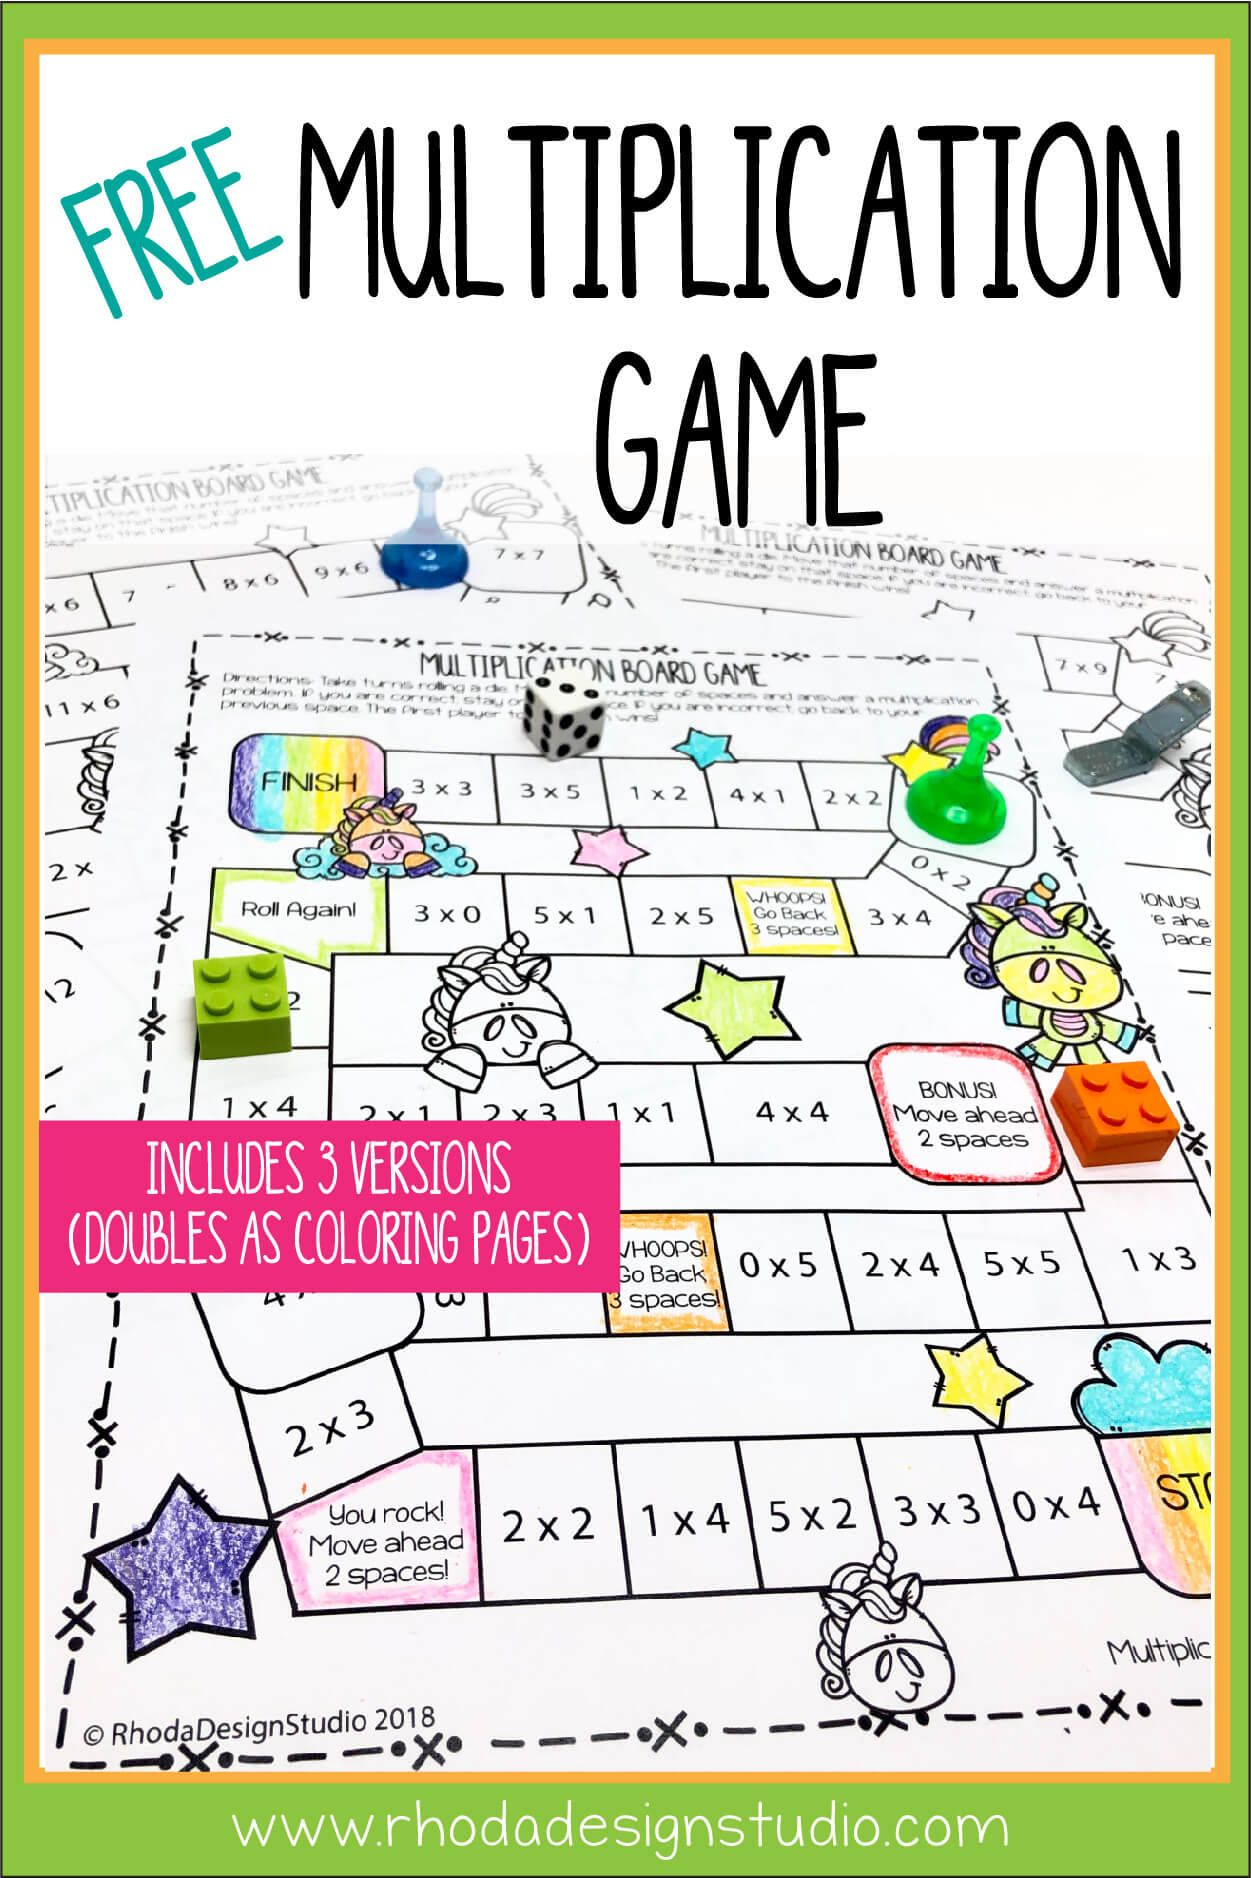 Easy To Use Free Multiplication Game Printables